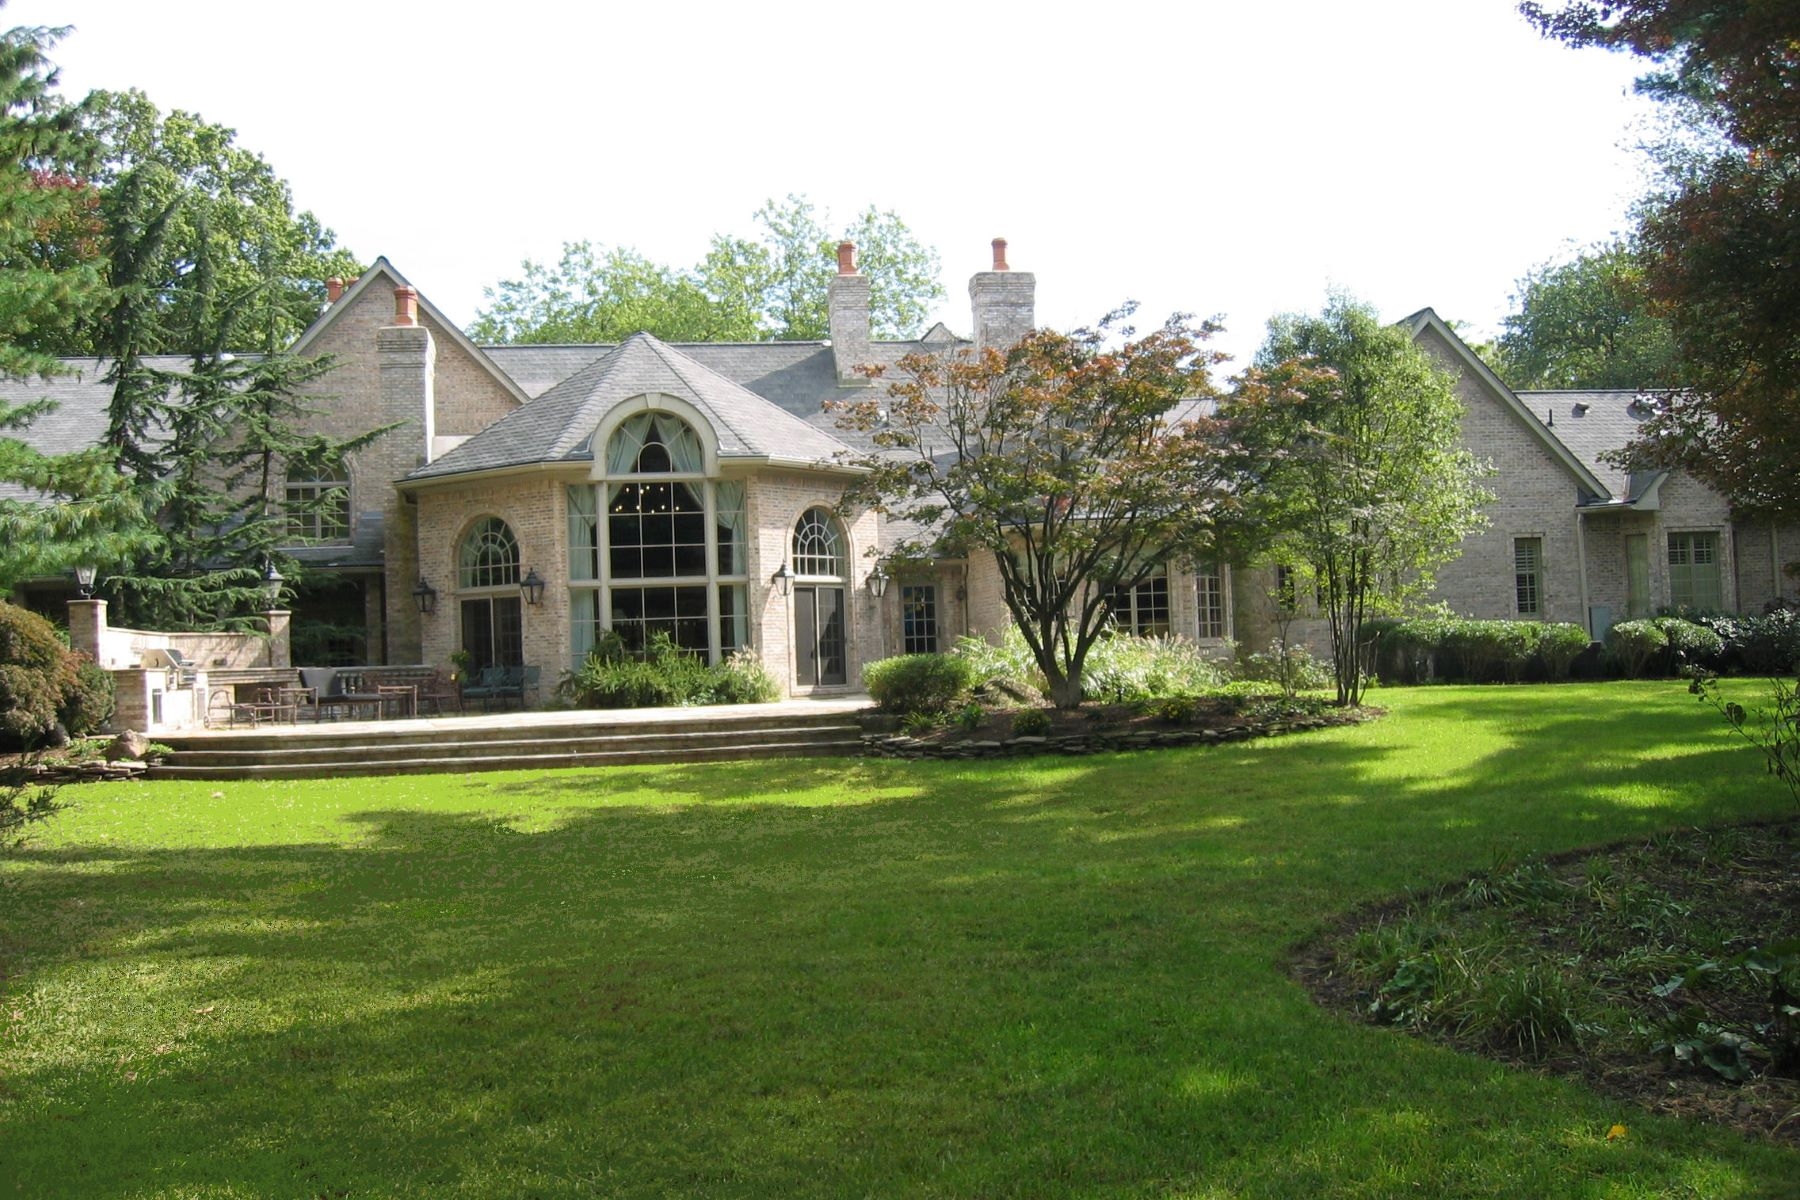 Single Family Home for Sale at Majestic Brick Manor 320 Algonquin Road Franklin Lakes, New Jersey 07417 United States